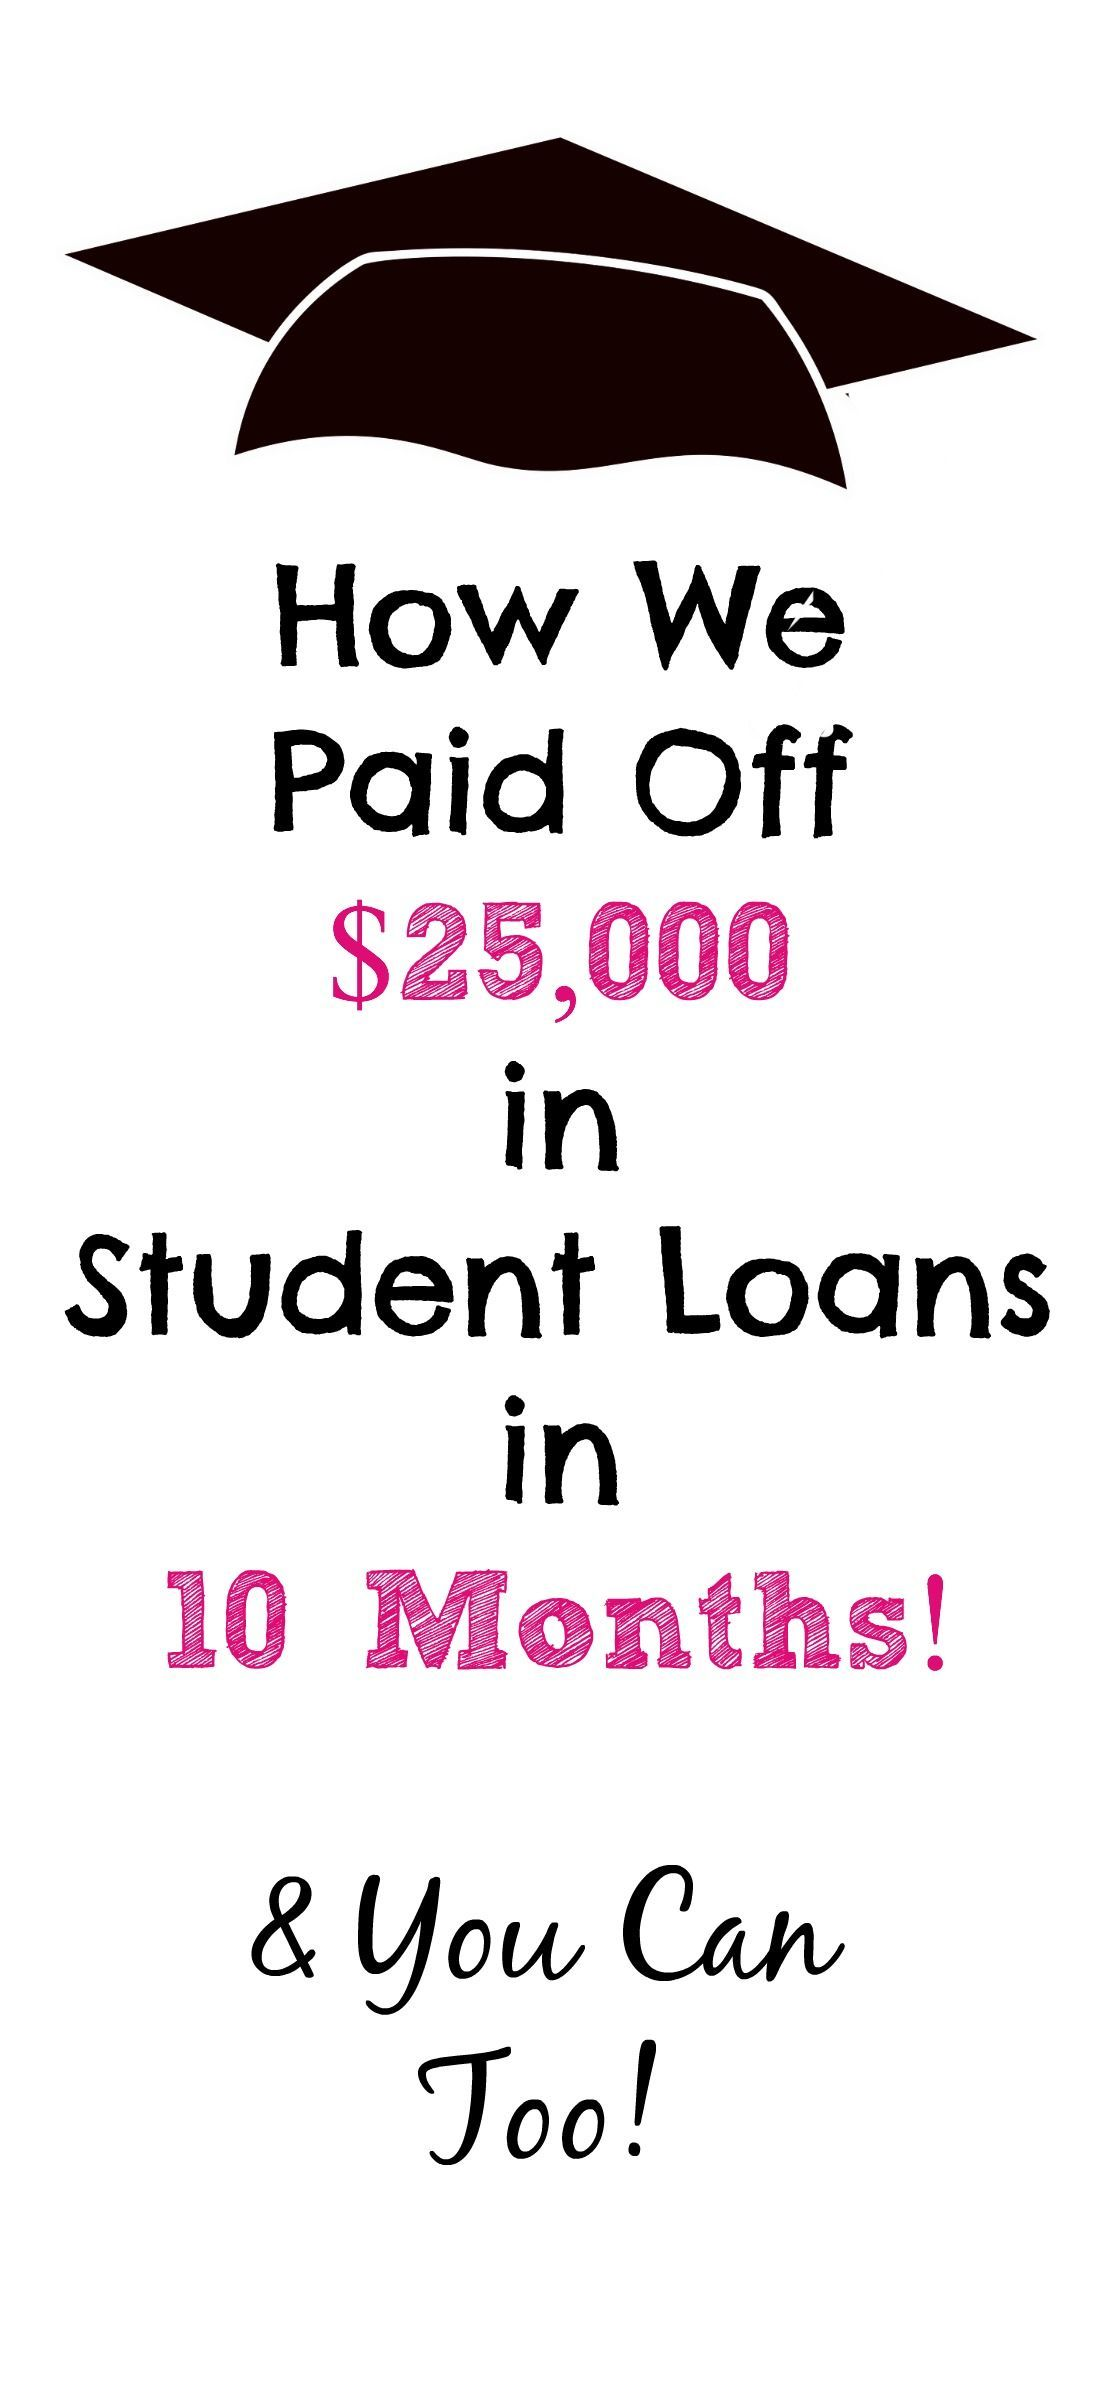 How We Paid Off 25,000 in Student Loans in 10 Months